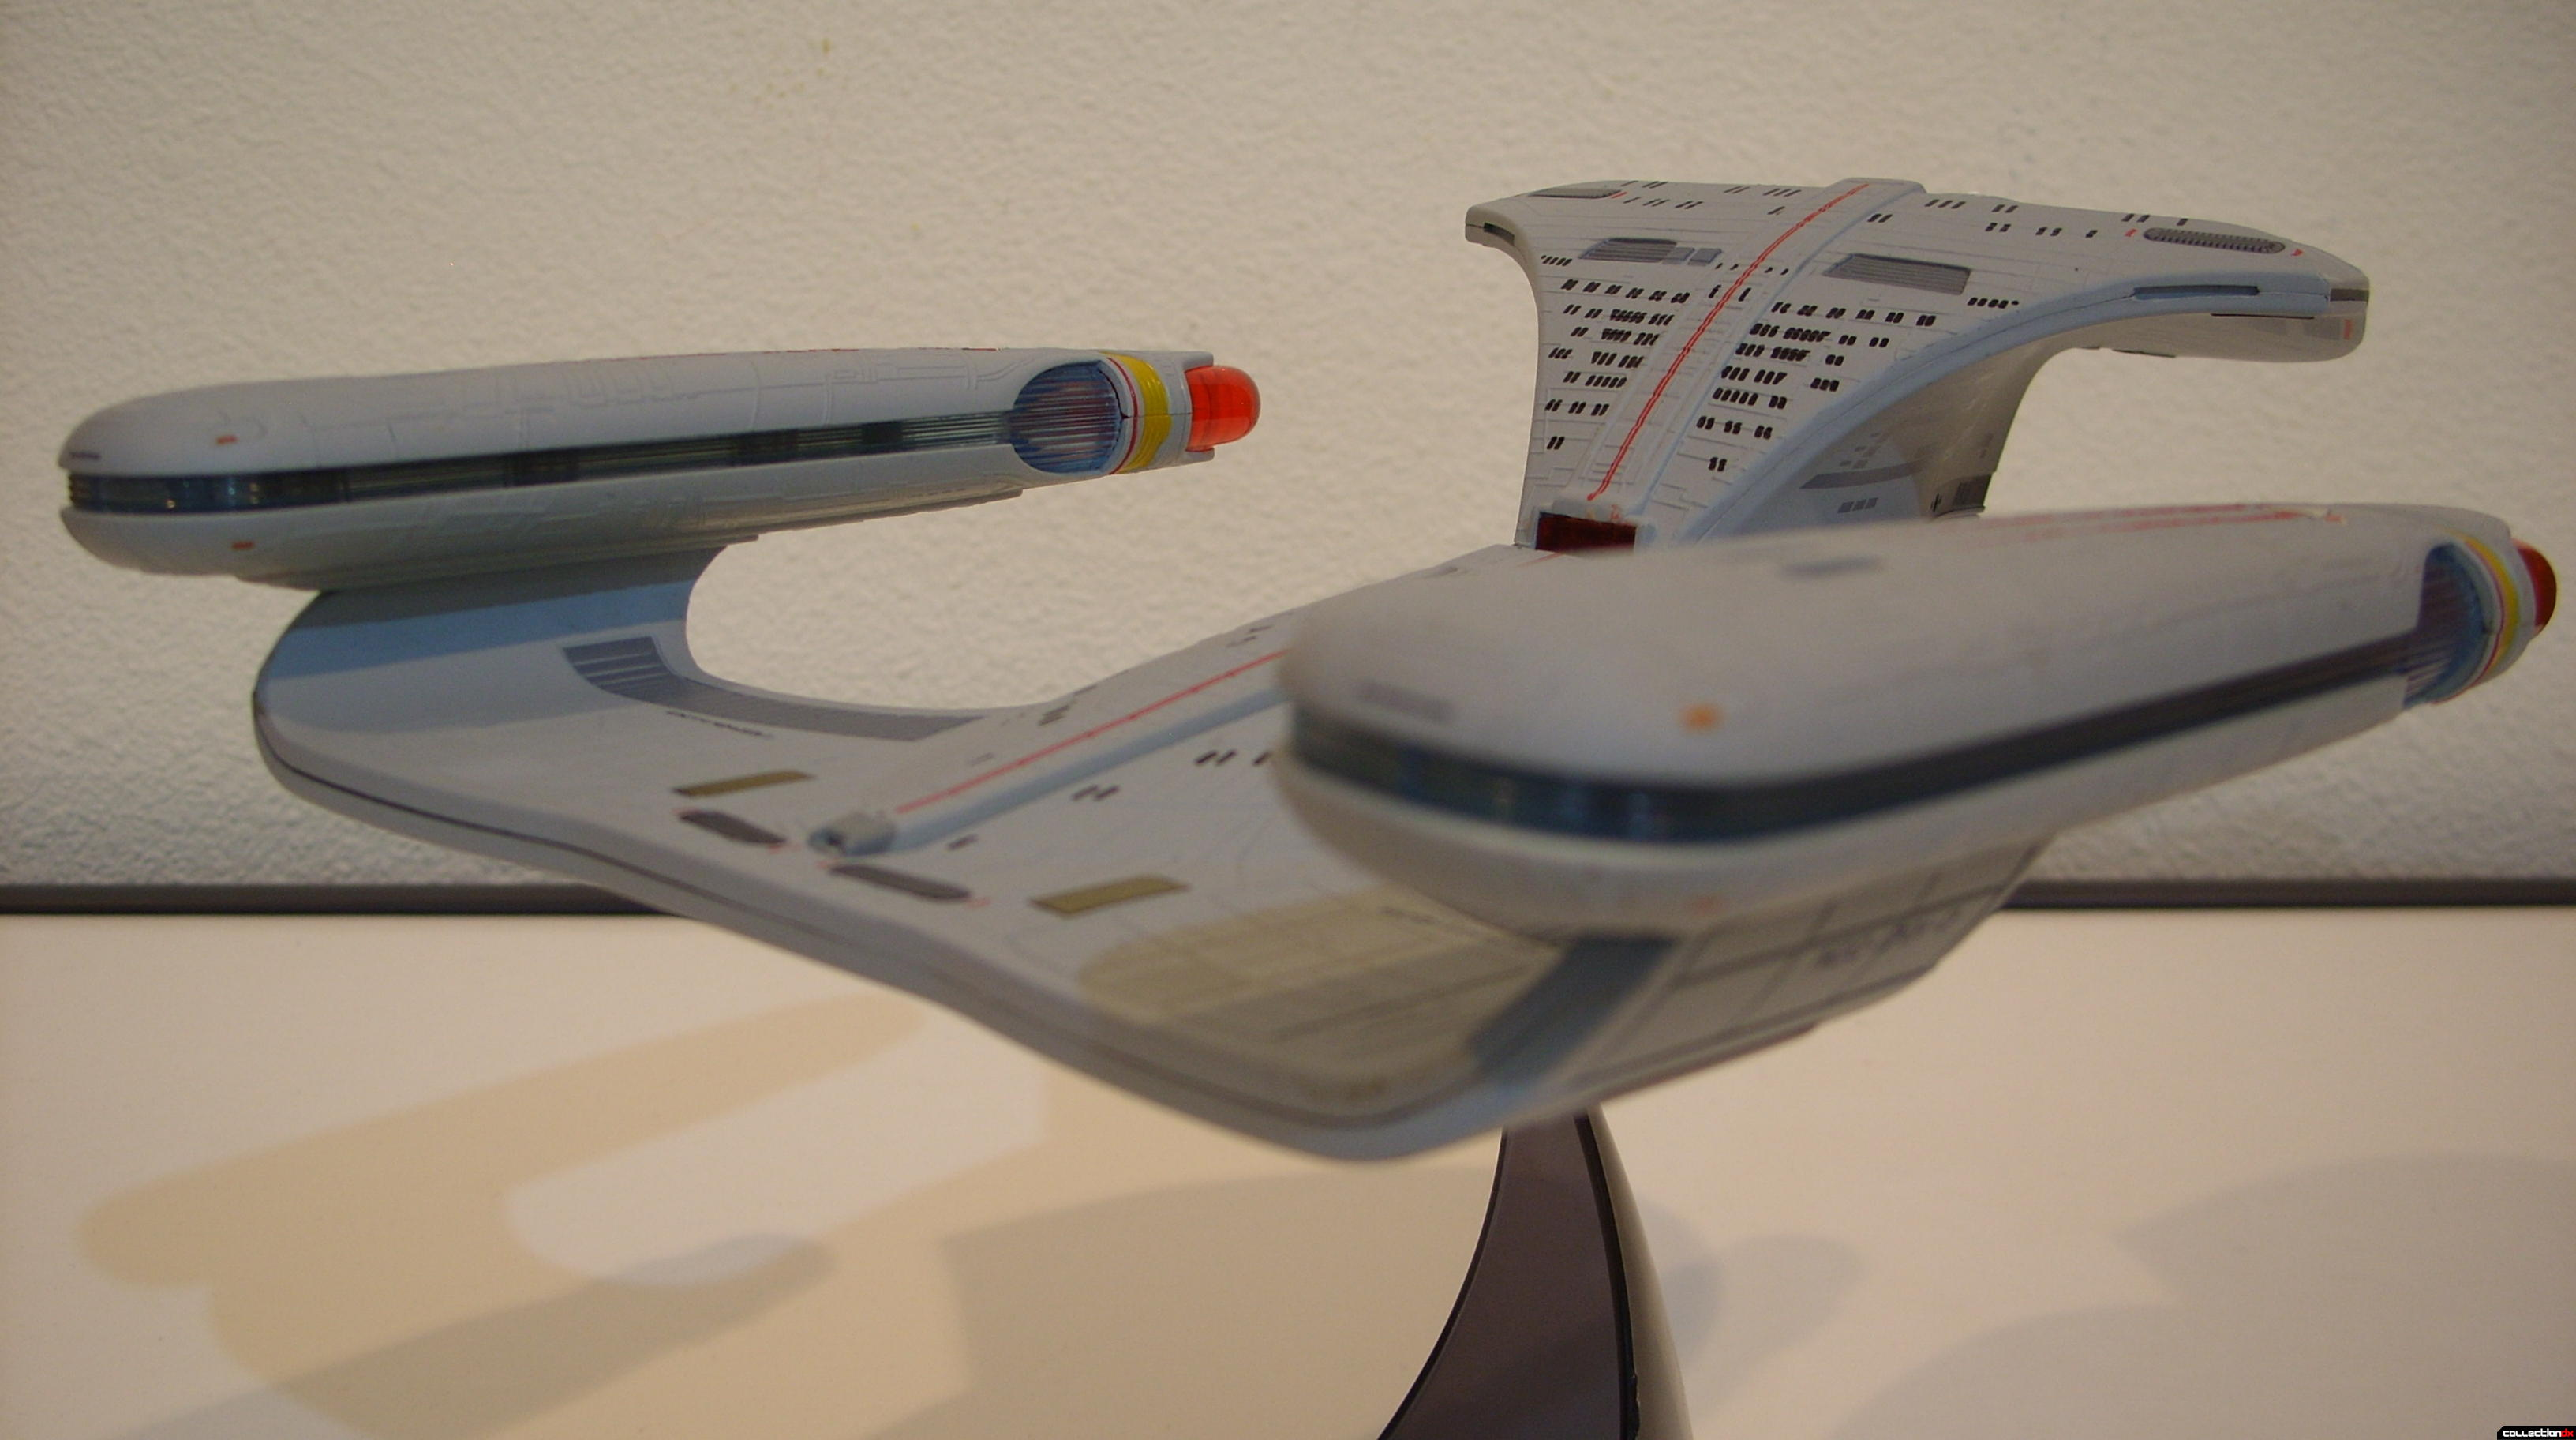 Starship Legends U.S.S. Enterprise-D (Battle Section, aft-dorsal)